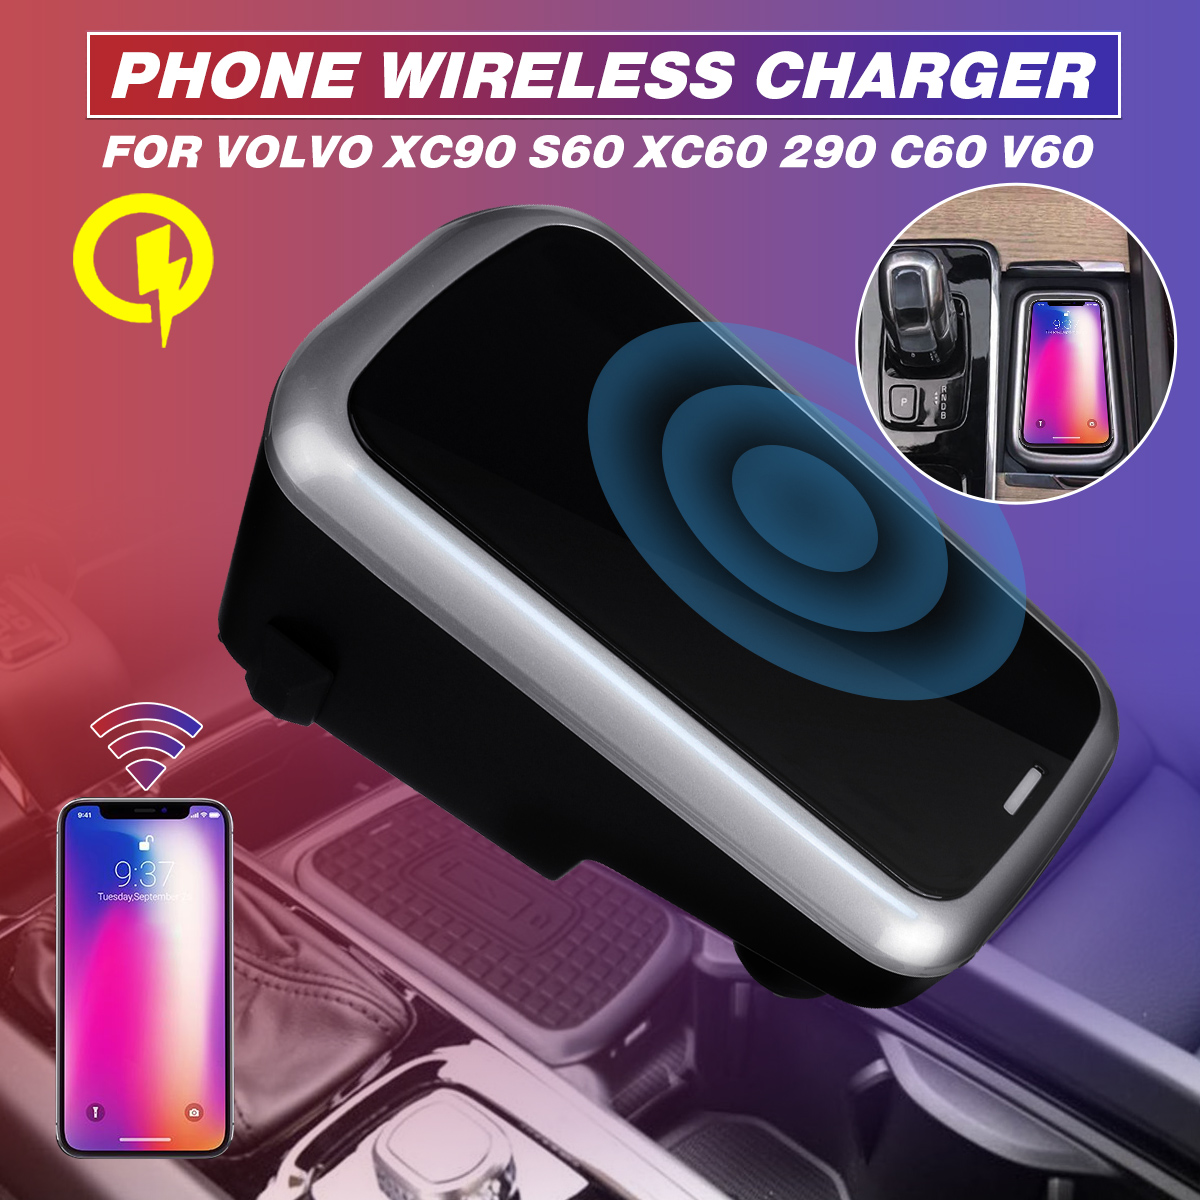 Car Accessories Car Phone Charging Qi Wireless Charger For Volvo XC90 S60 XC60 S90 C60 V60 For Samsung Note 9 S9 S8Car Accessories Car Phone Charging Qi Wireless Charger For Volvo XC90 S60 XC60 S90 C60 V60 For Samsung Note 9 S9 S8